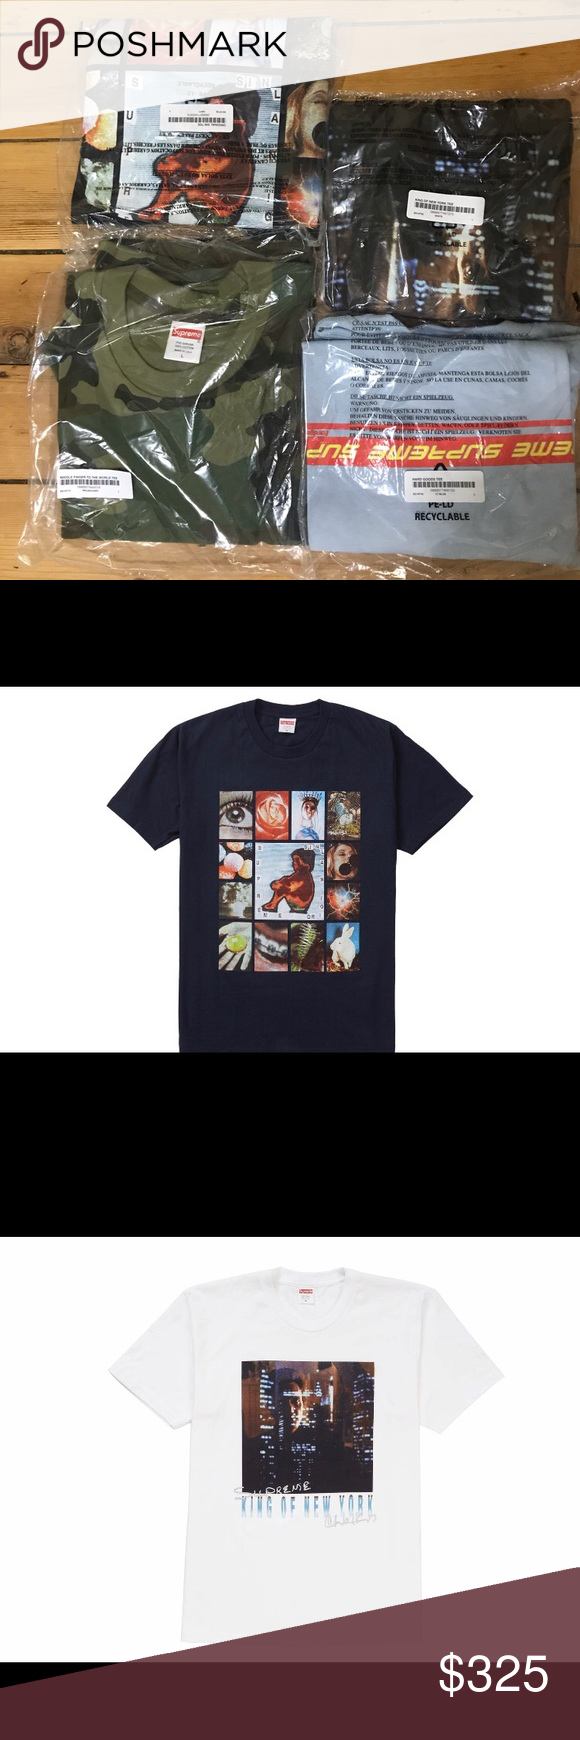 8630517fcf58 SUPREME t-shirt package deal SS19 T-shirts All Size L Middle Finger to the  World (camo) Hard Goods (light blue) Original Sin (navy) King of New York  (white) ...